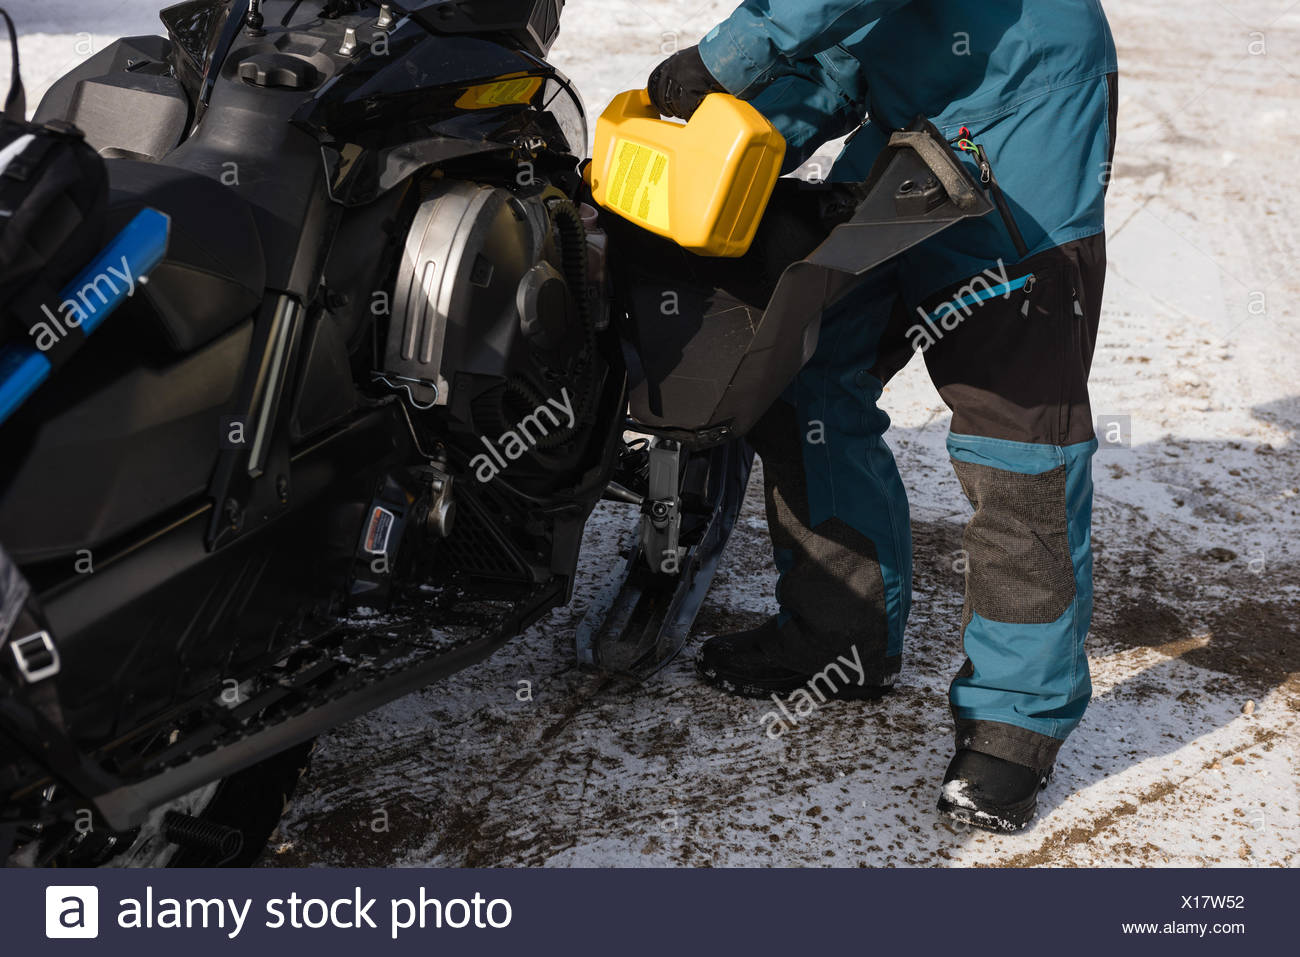 Man filling gas tank of snowmobile during winter - Stock Image